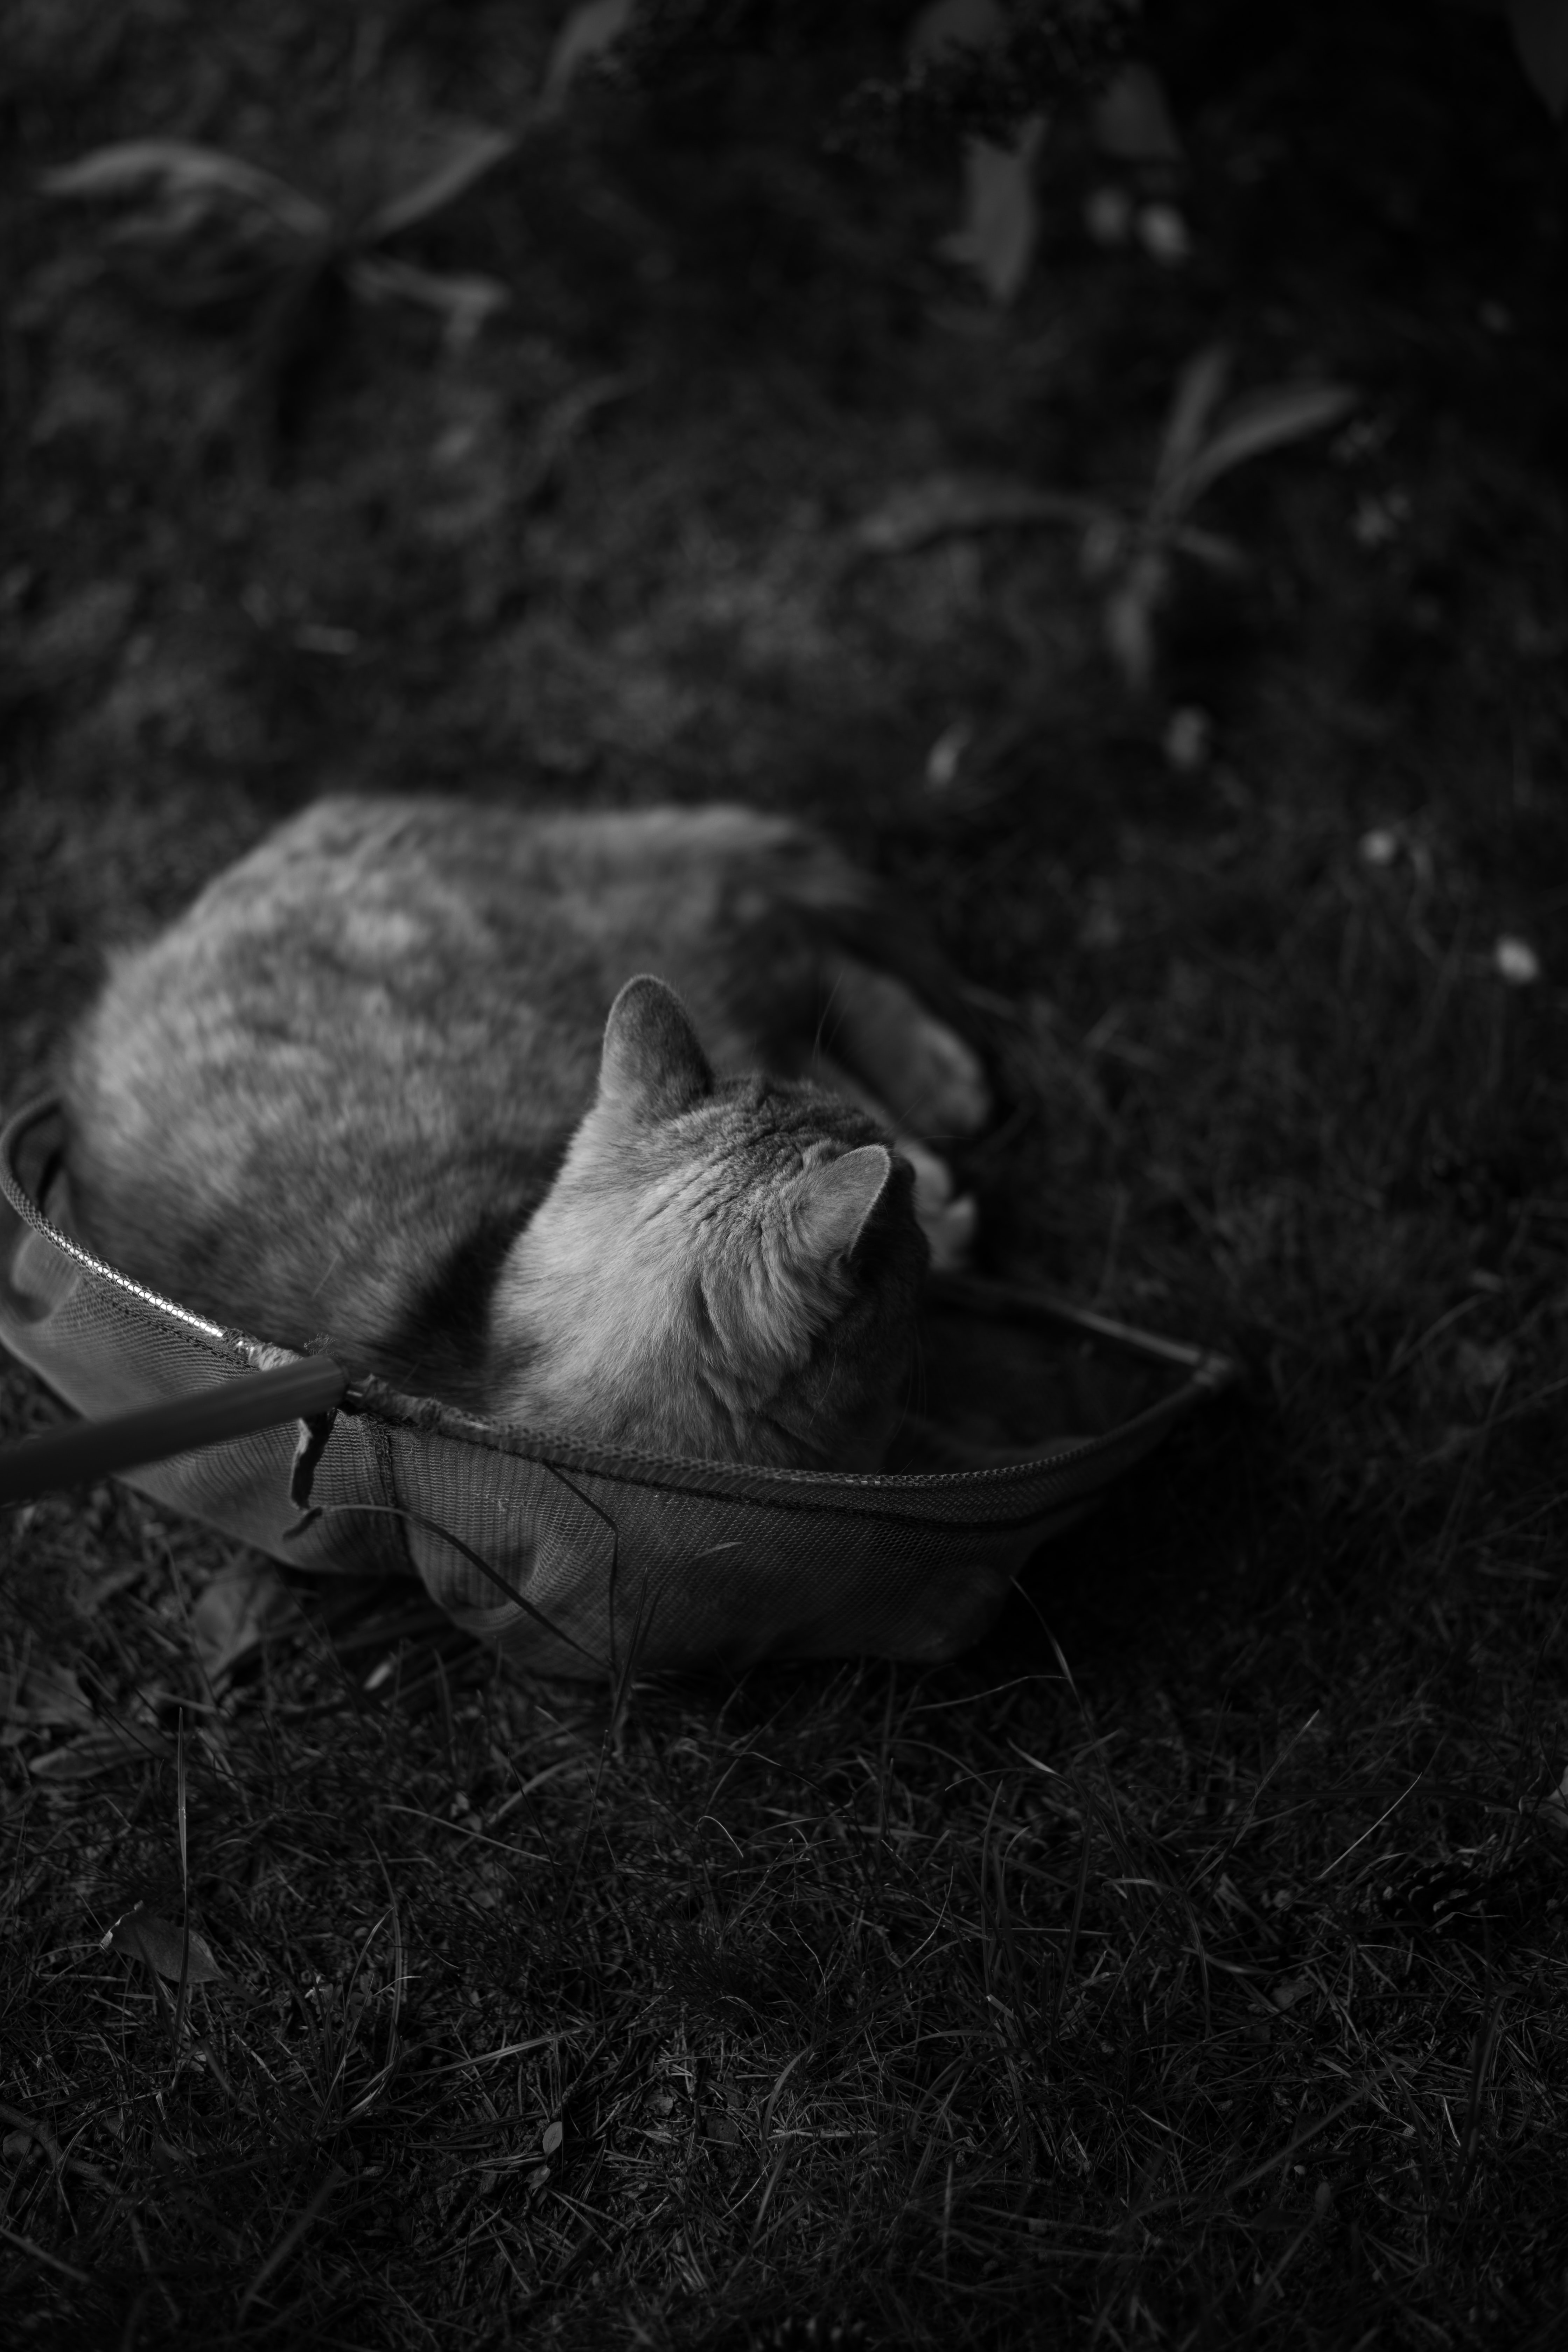 grayscale cat laying on net